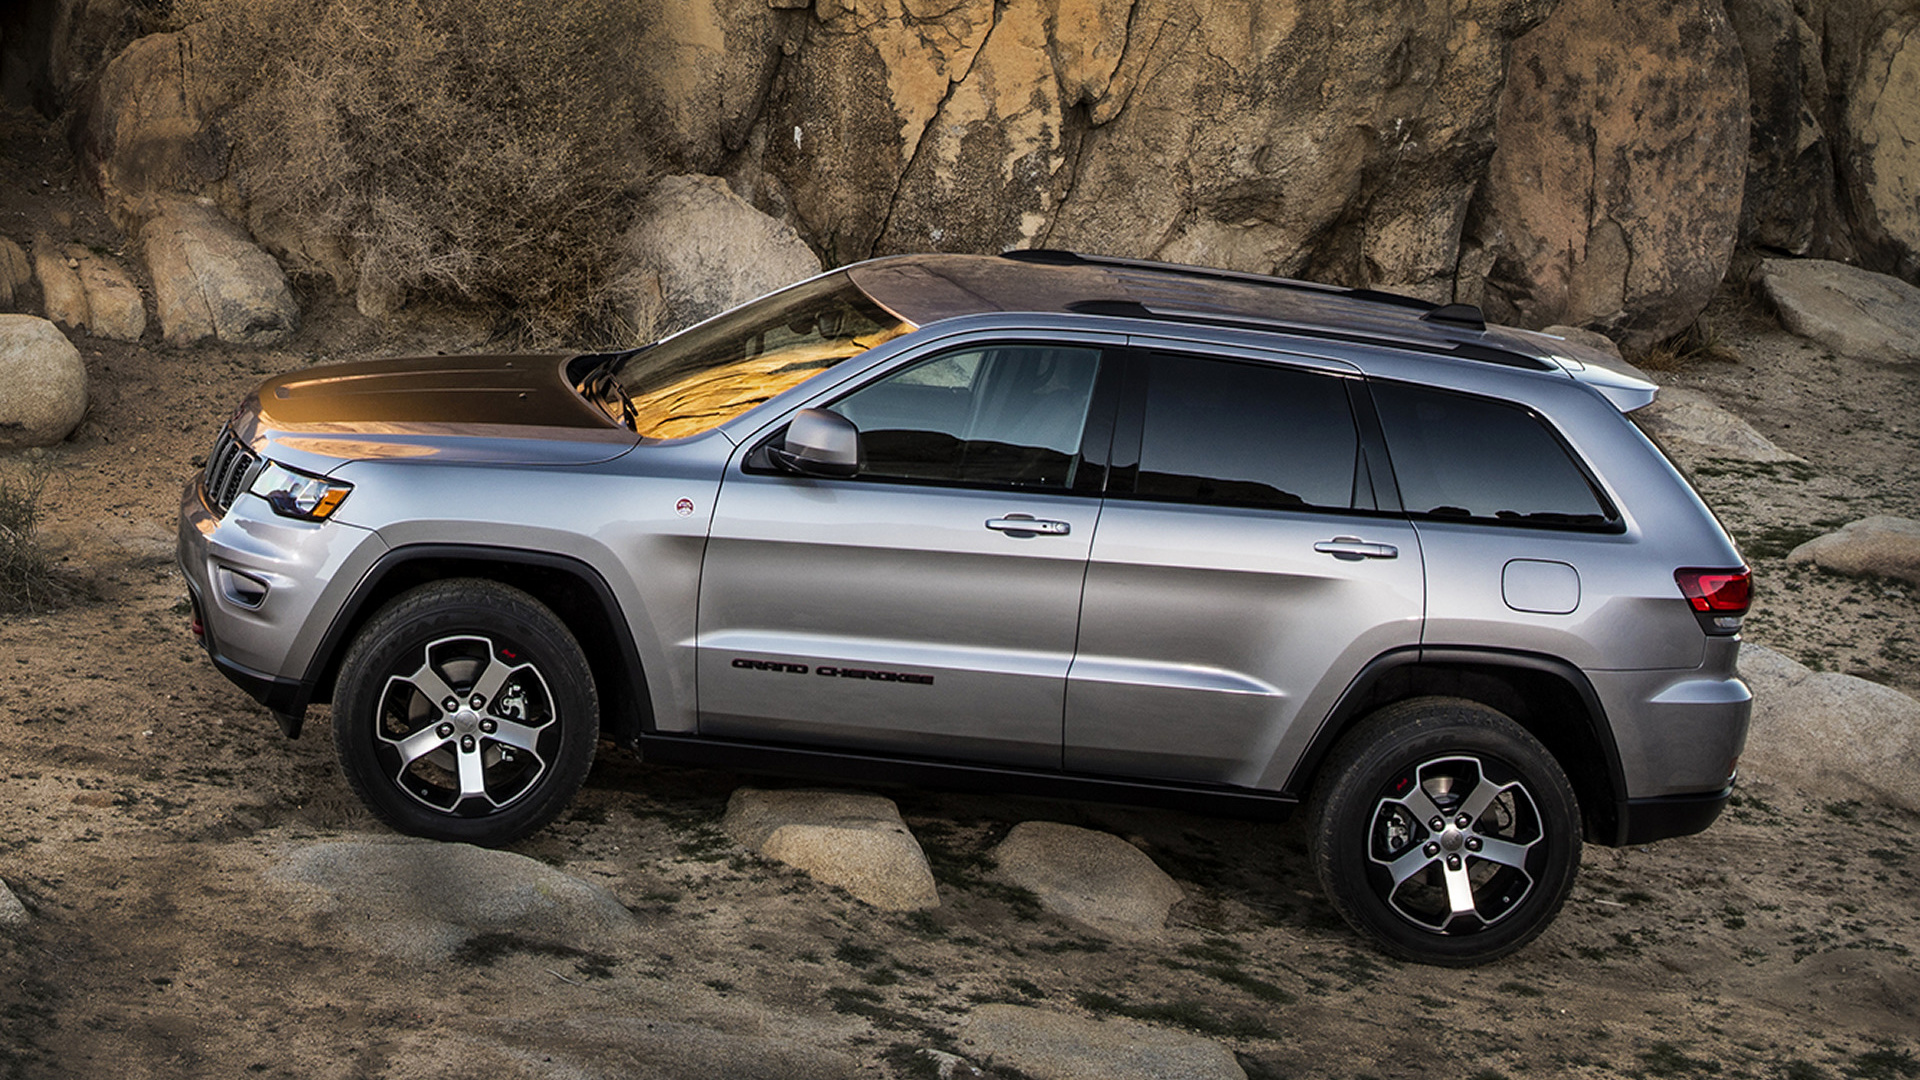 Jeep Grand Cherokee Trailhawk (2017) Wallpapers and HD ...